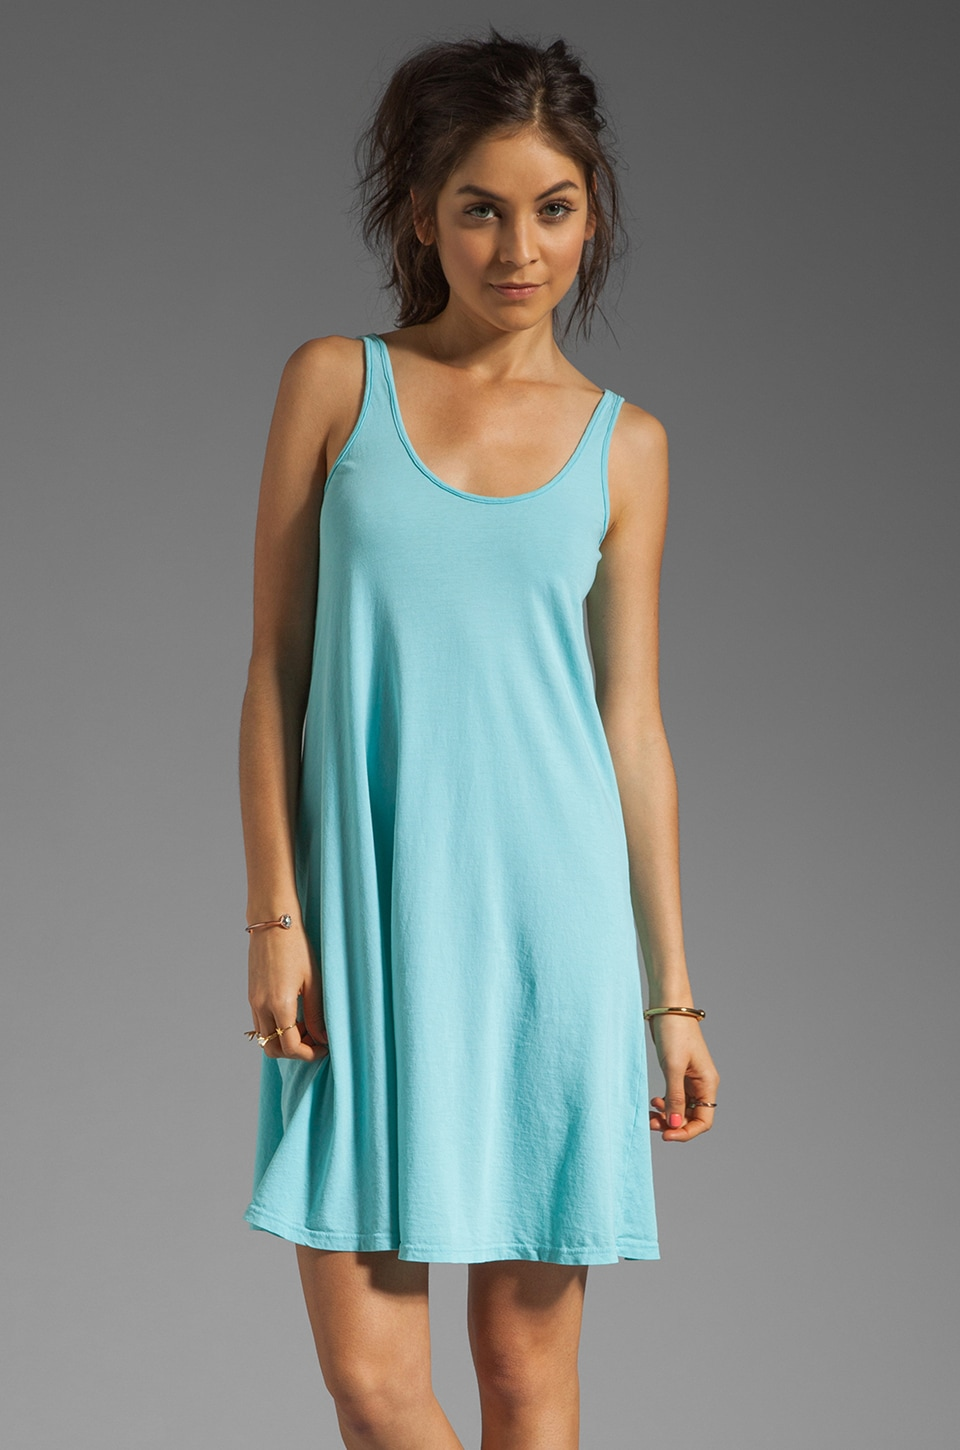 fLuXuS Vinna Tank Dress in Carolina